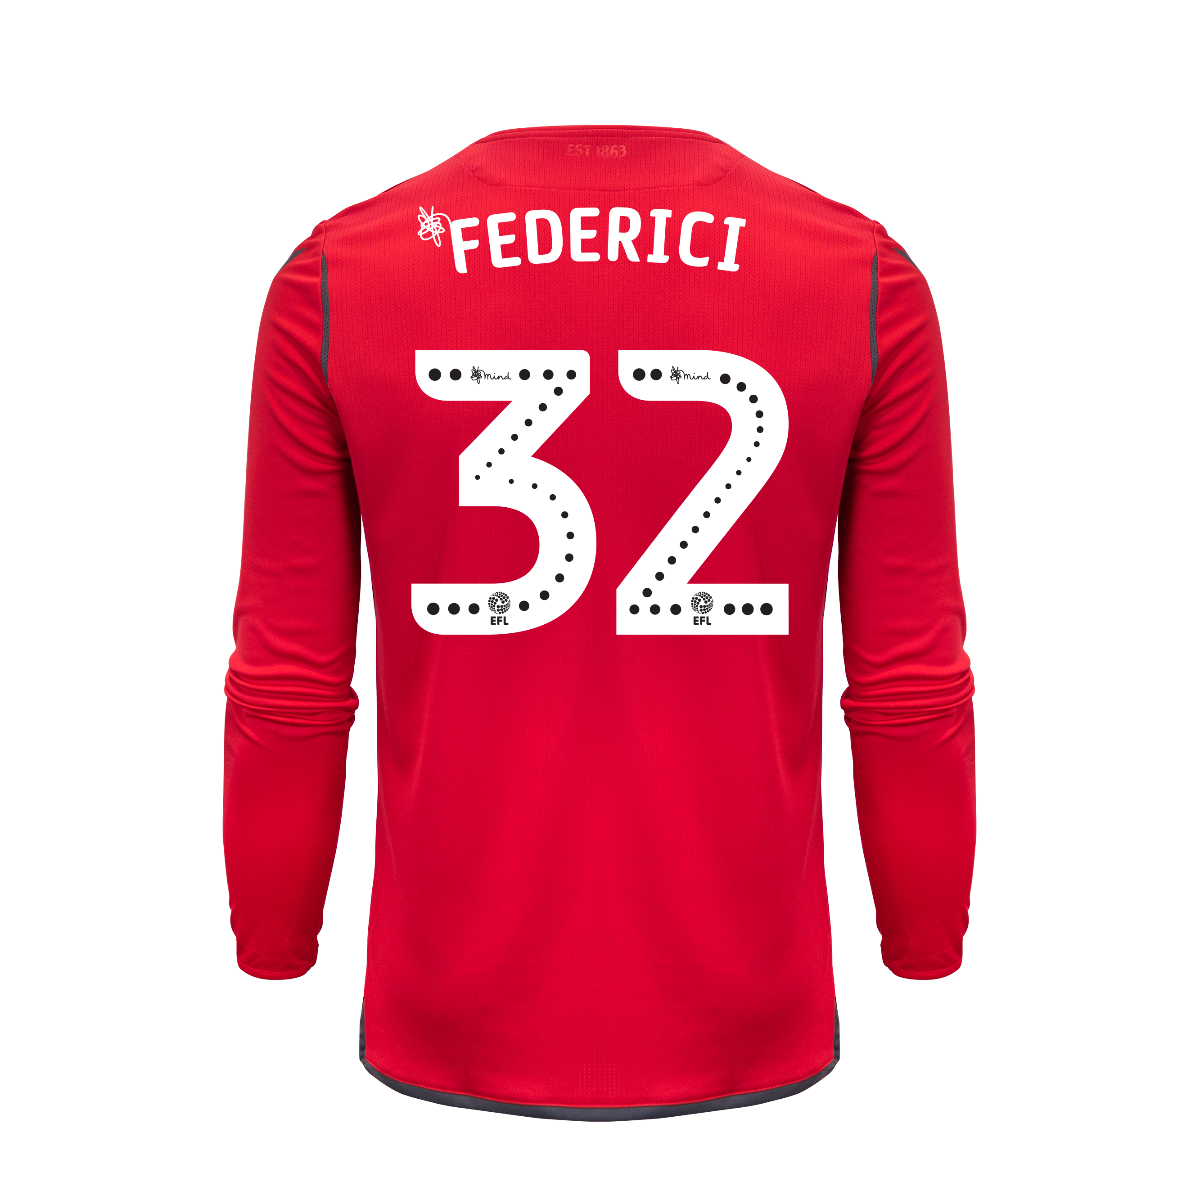 2019/20 Adult Away GK Shirt - Federici